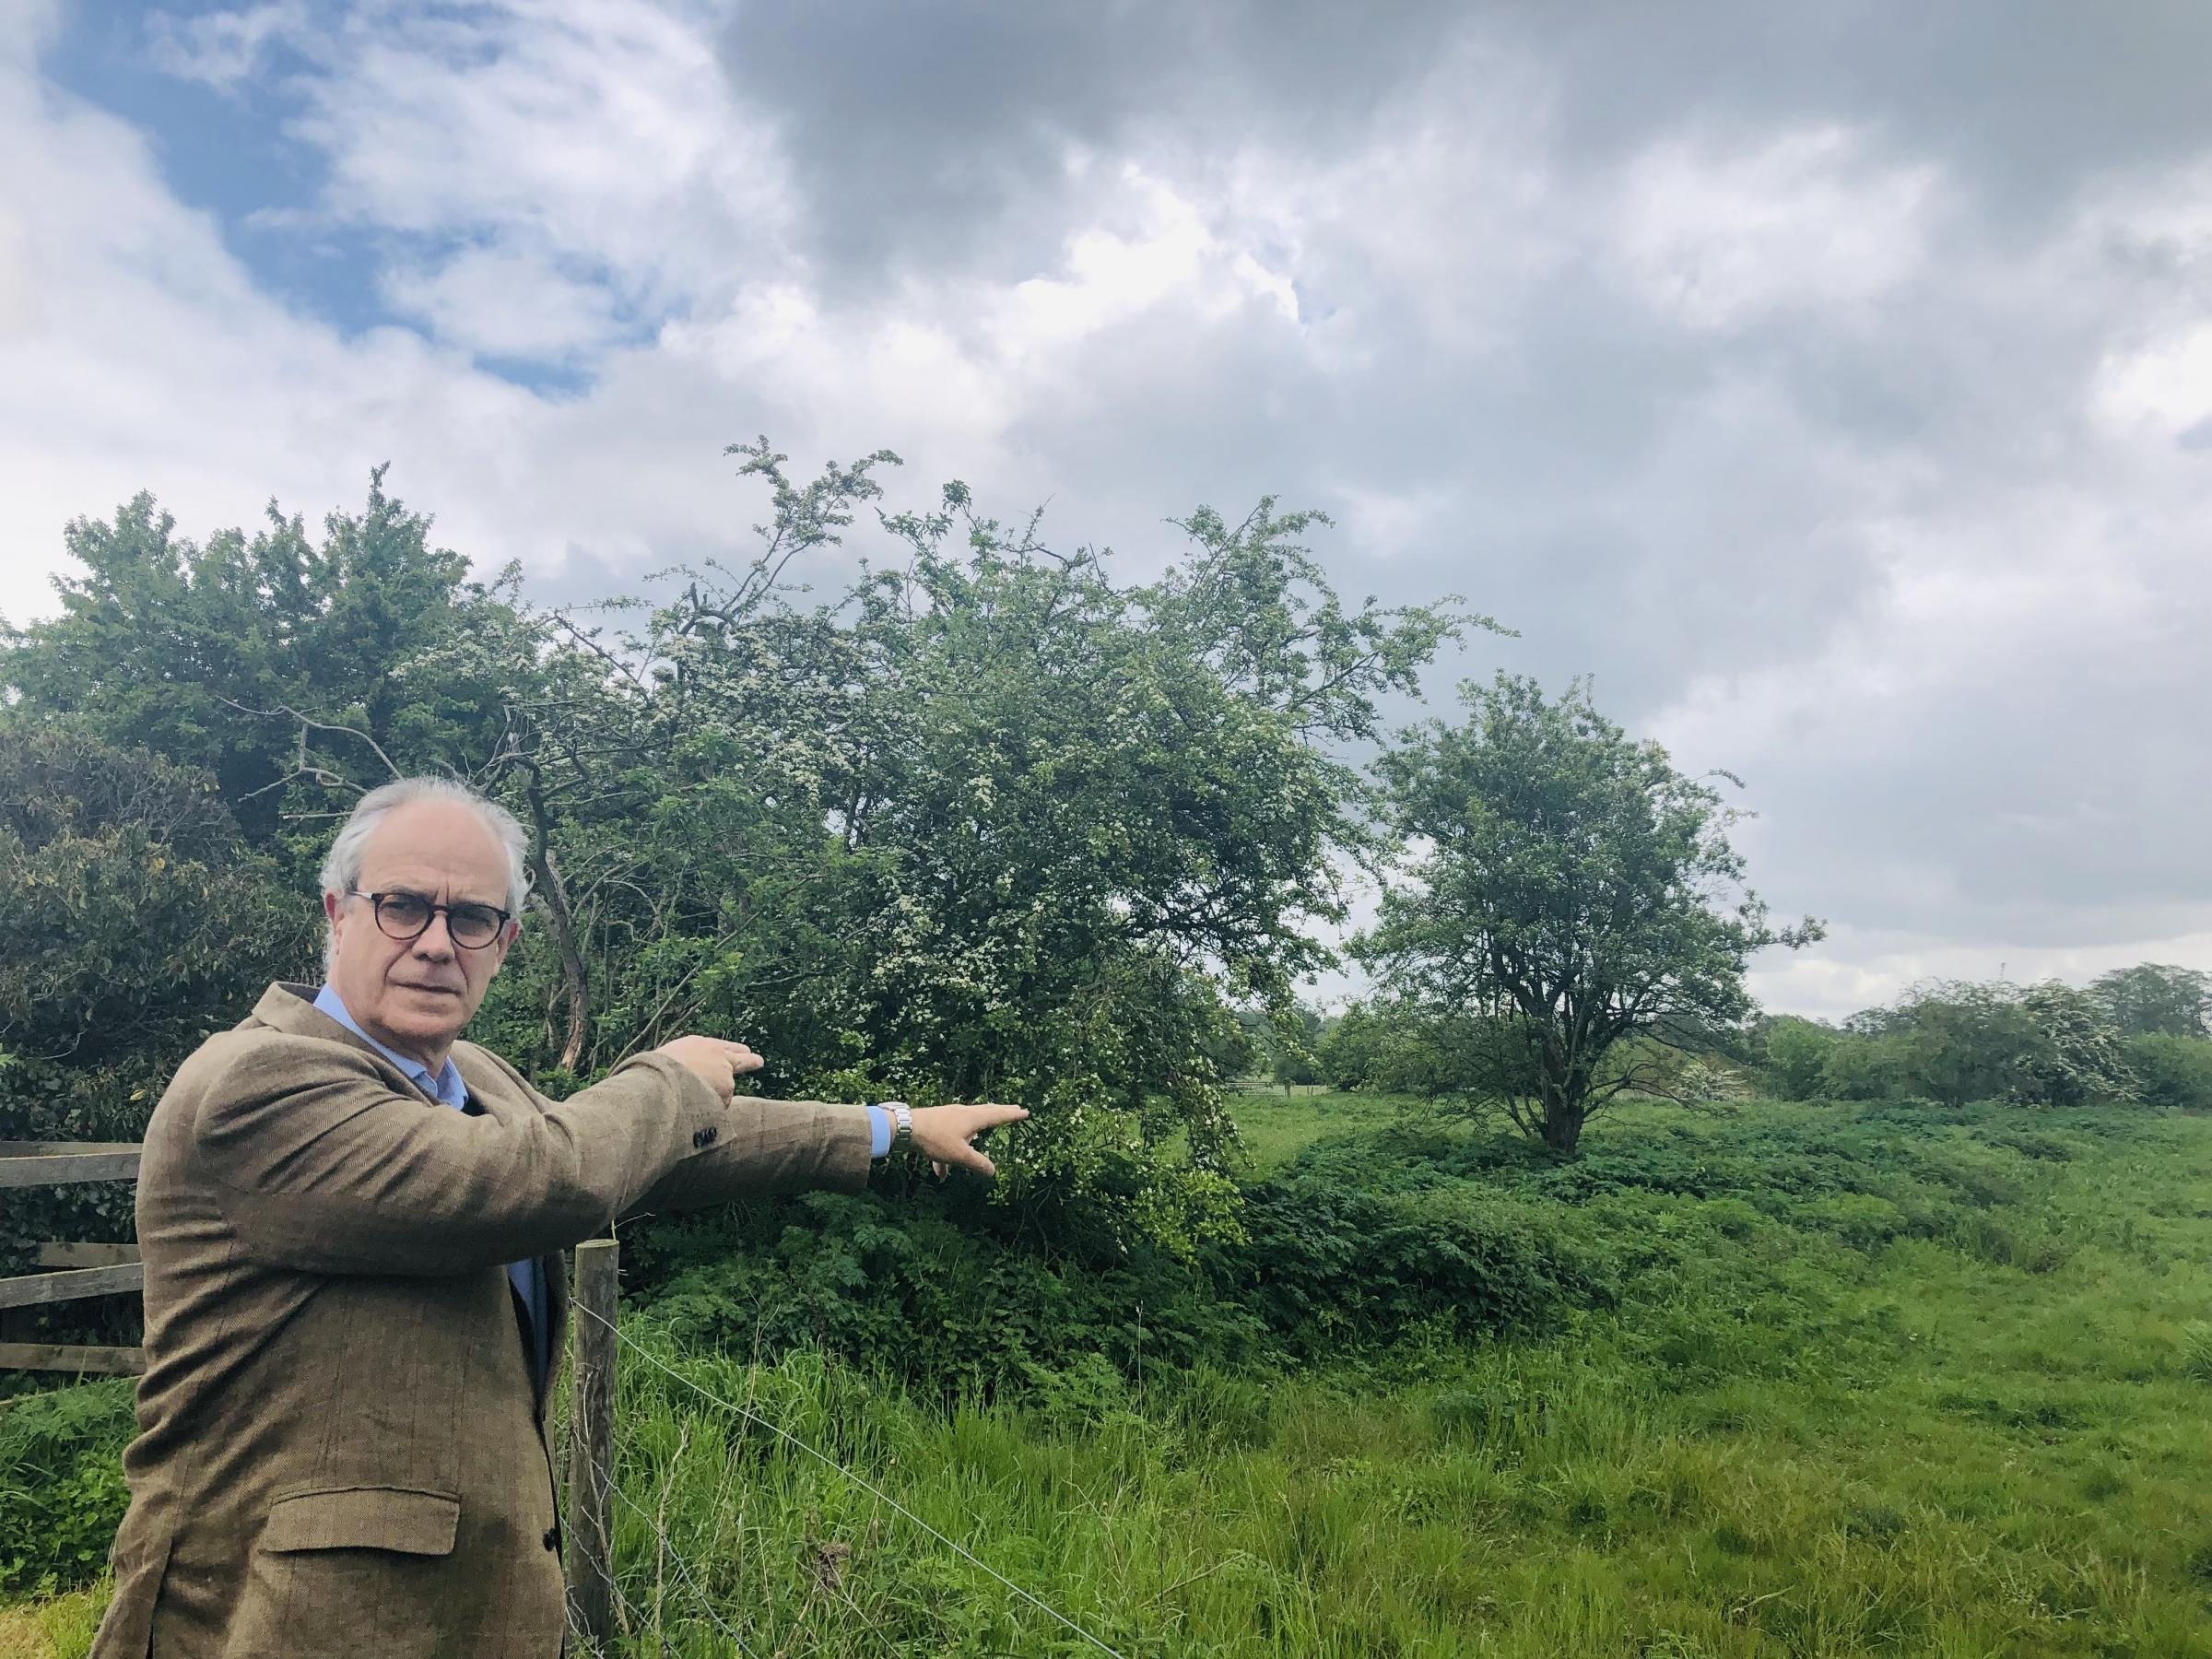 Row - Dedham Vale Society chairman Charles Clover shows where the hedge was cut